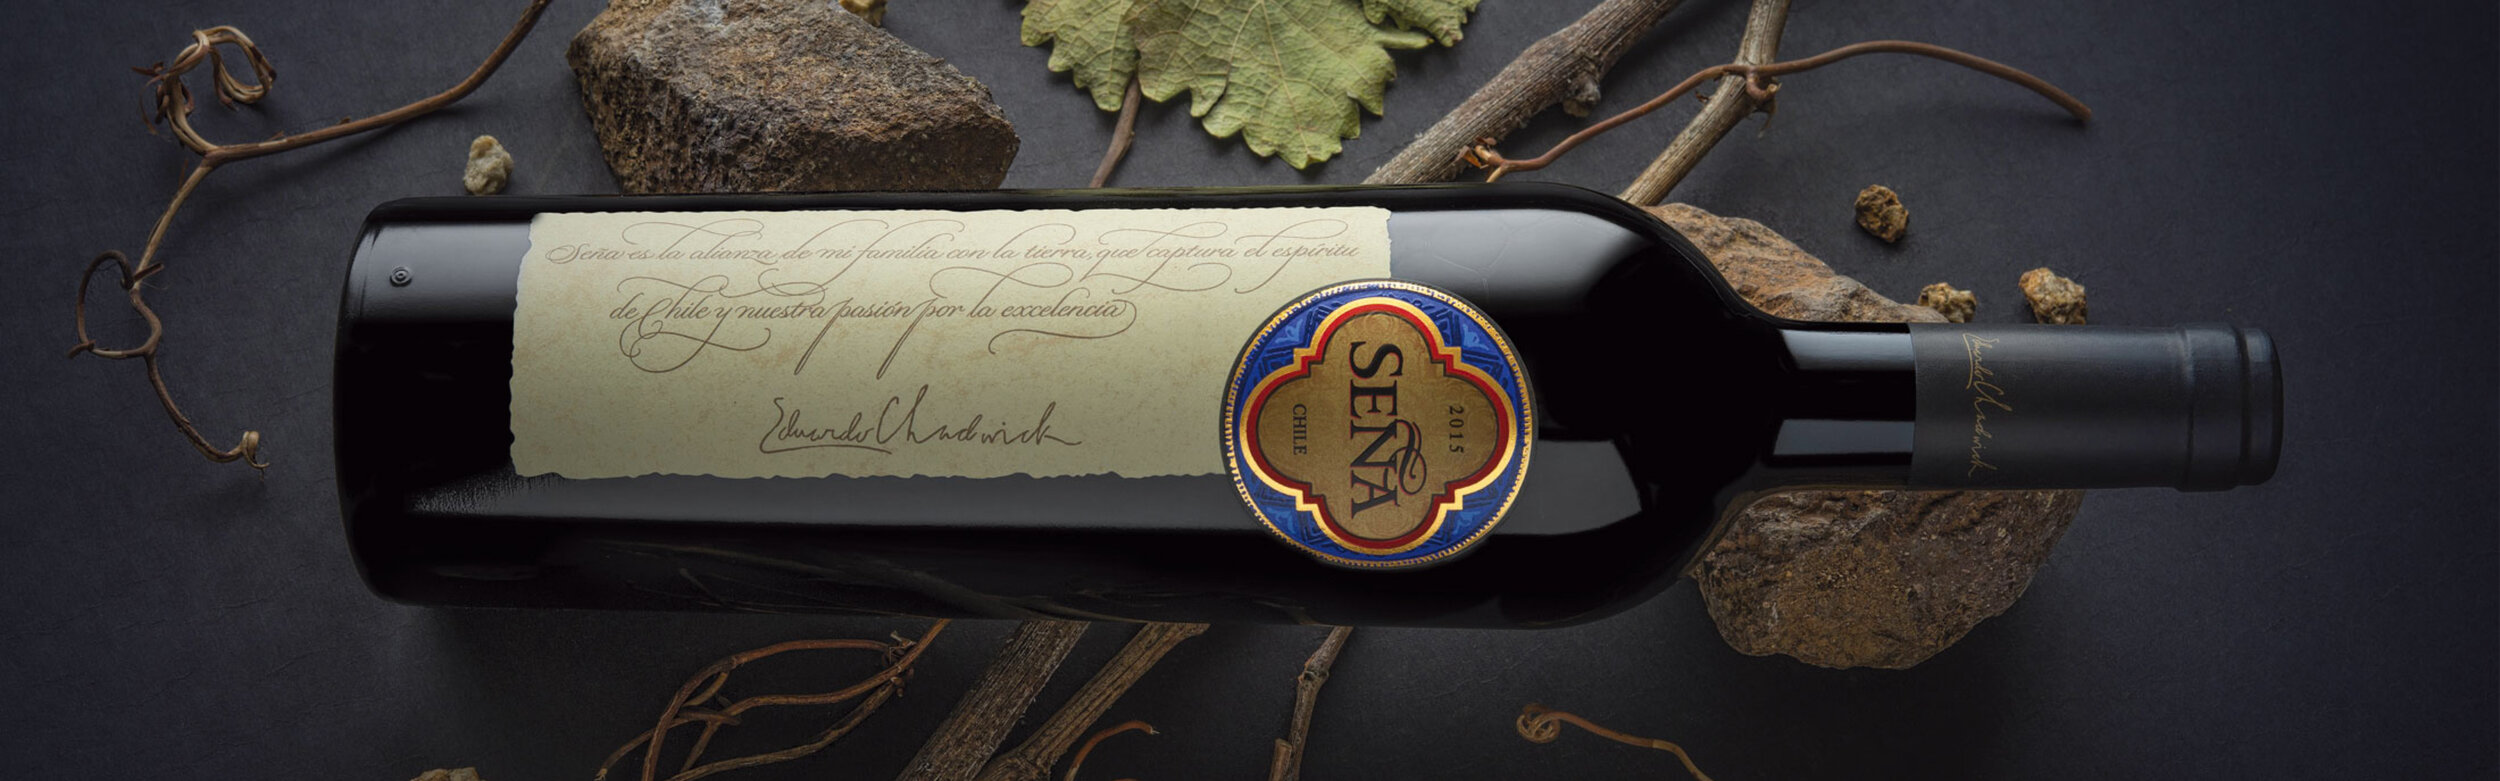 Fine wines such as Seña, recently listed on Alti Wine Exchange, fare as unique alternative investment options.